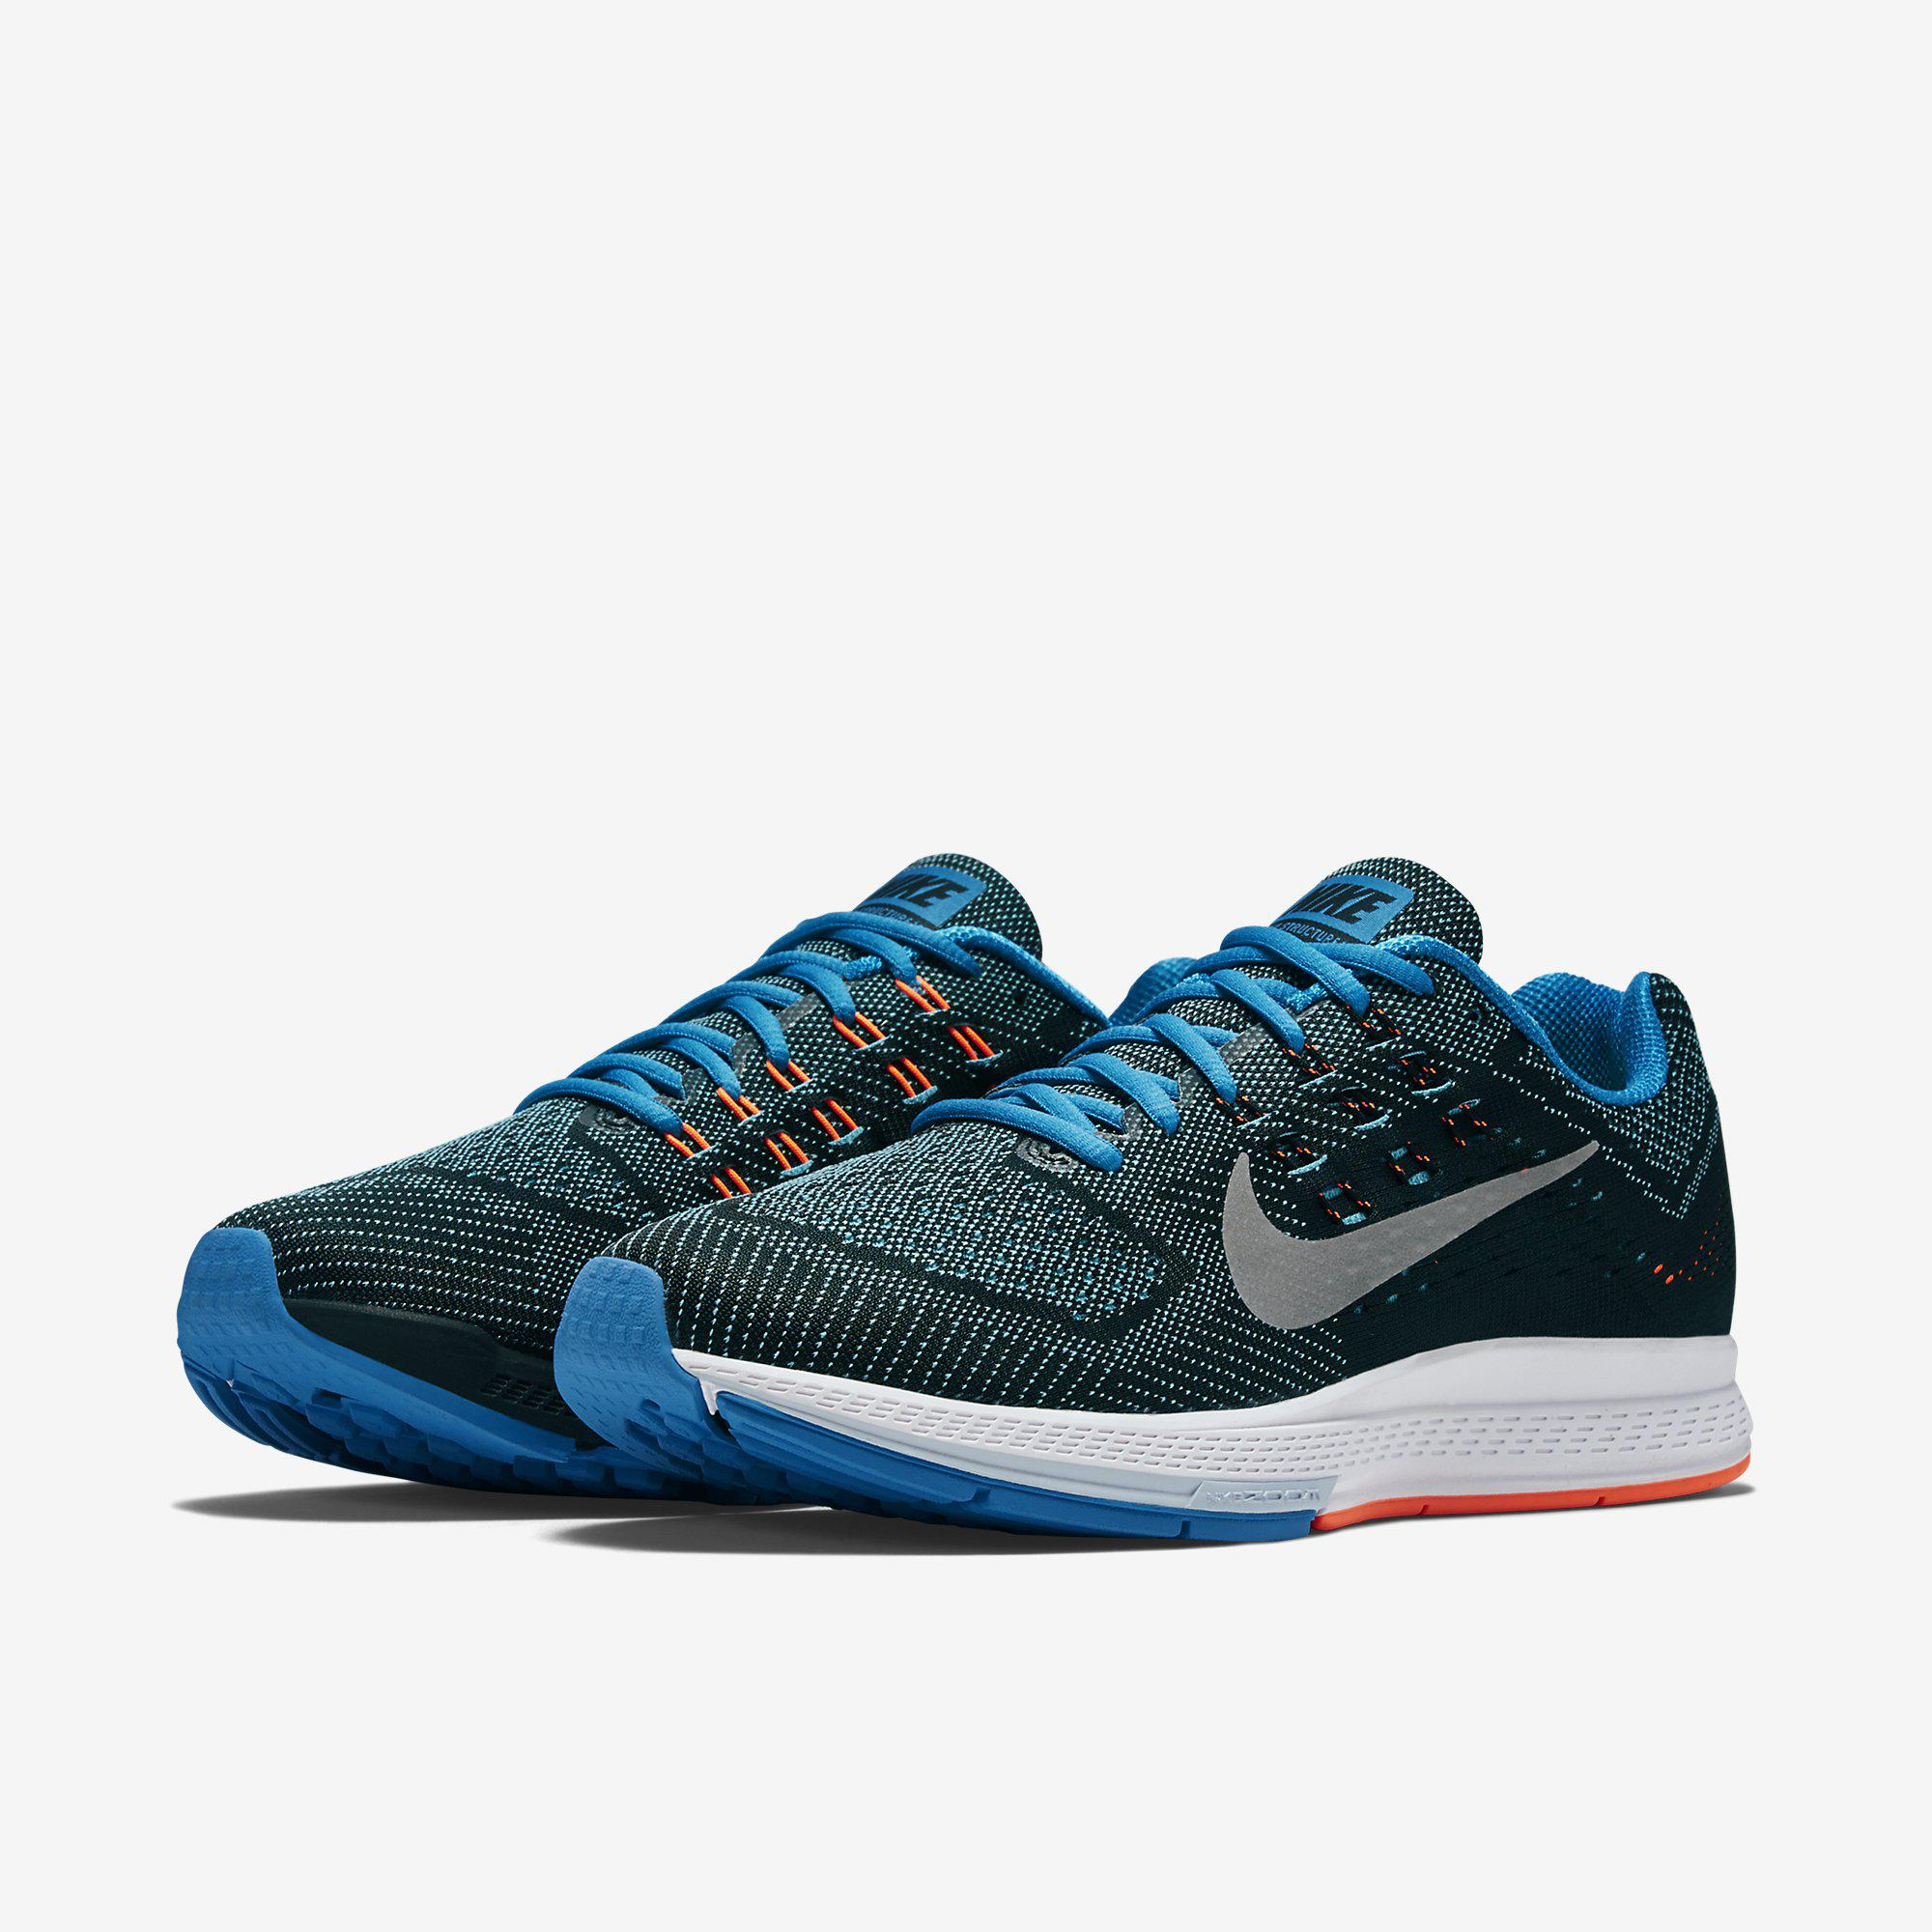 a9bf2516ca80b ... spain nike mens air zoom structure 18 running shoes blue lagoon . d7aa6  2f68c